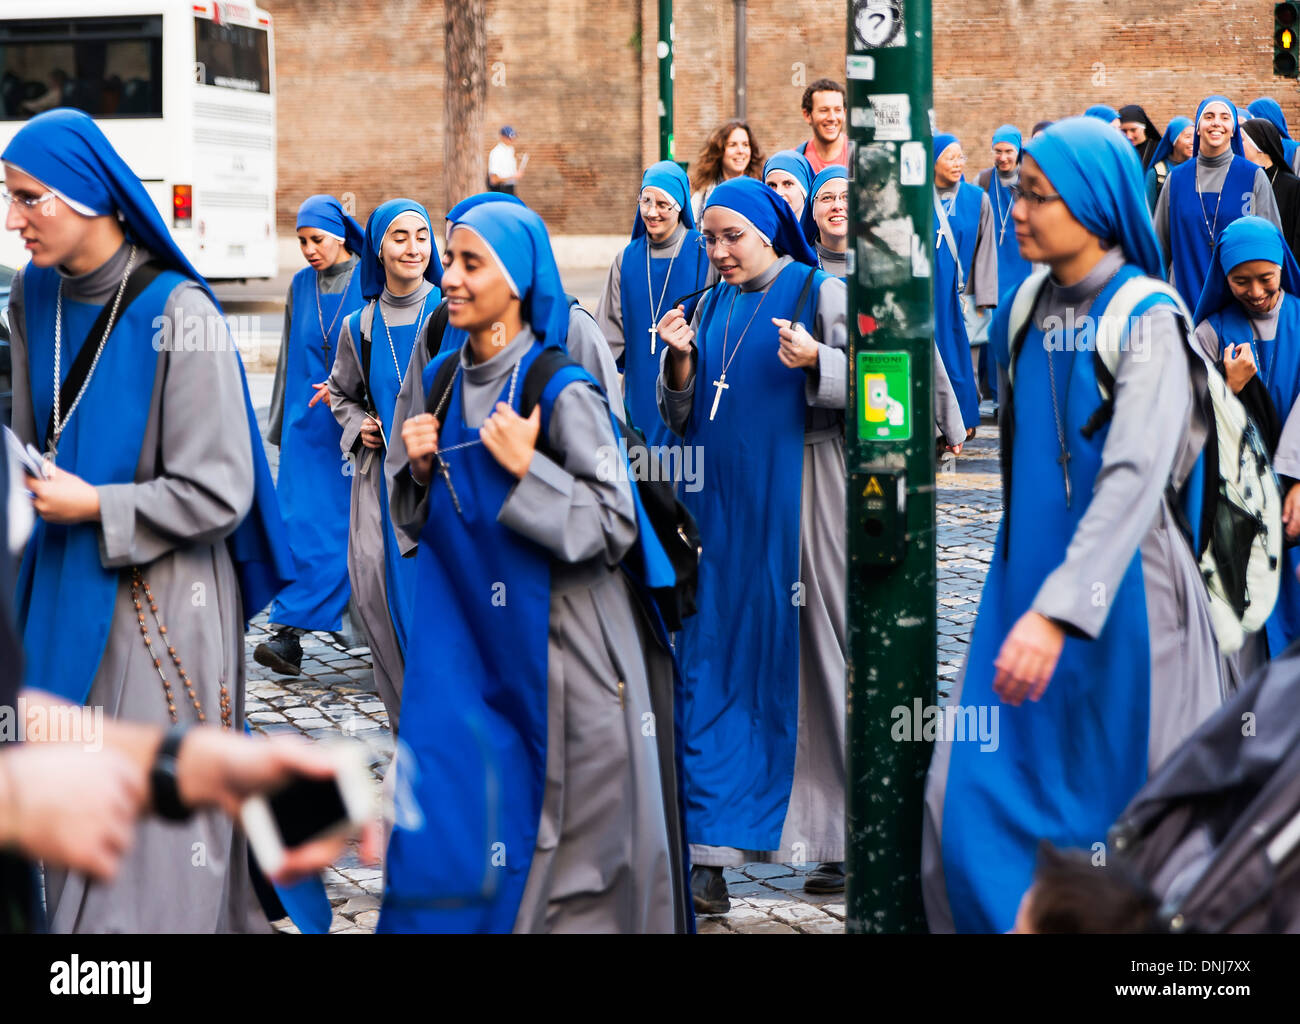 Group of young nuns of the Servants of the Lord religious order explore the sights of ancient Rome, Italy - Stock Image